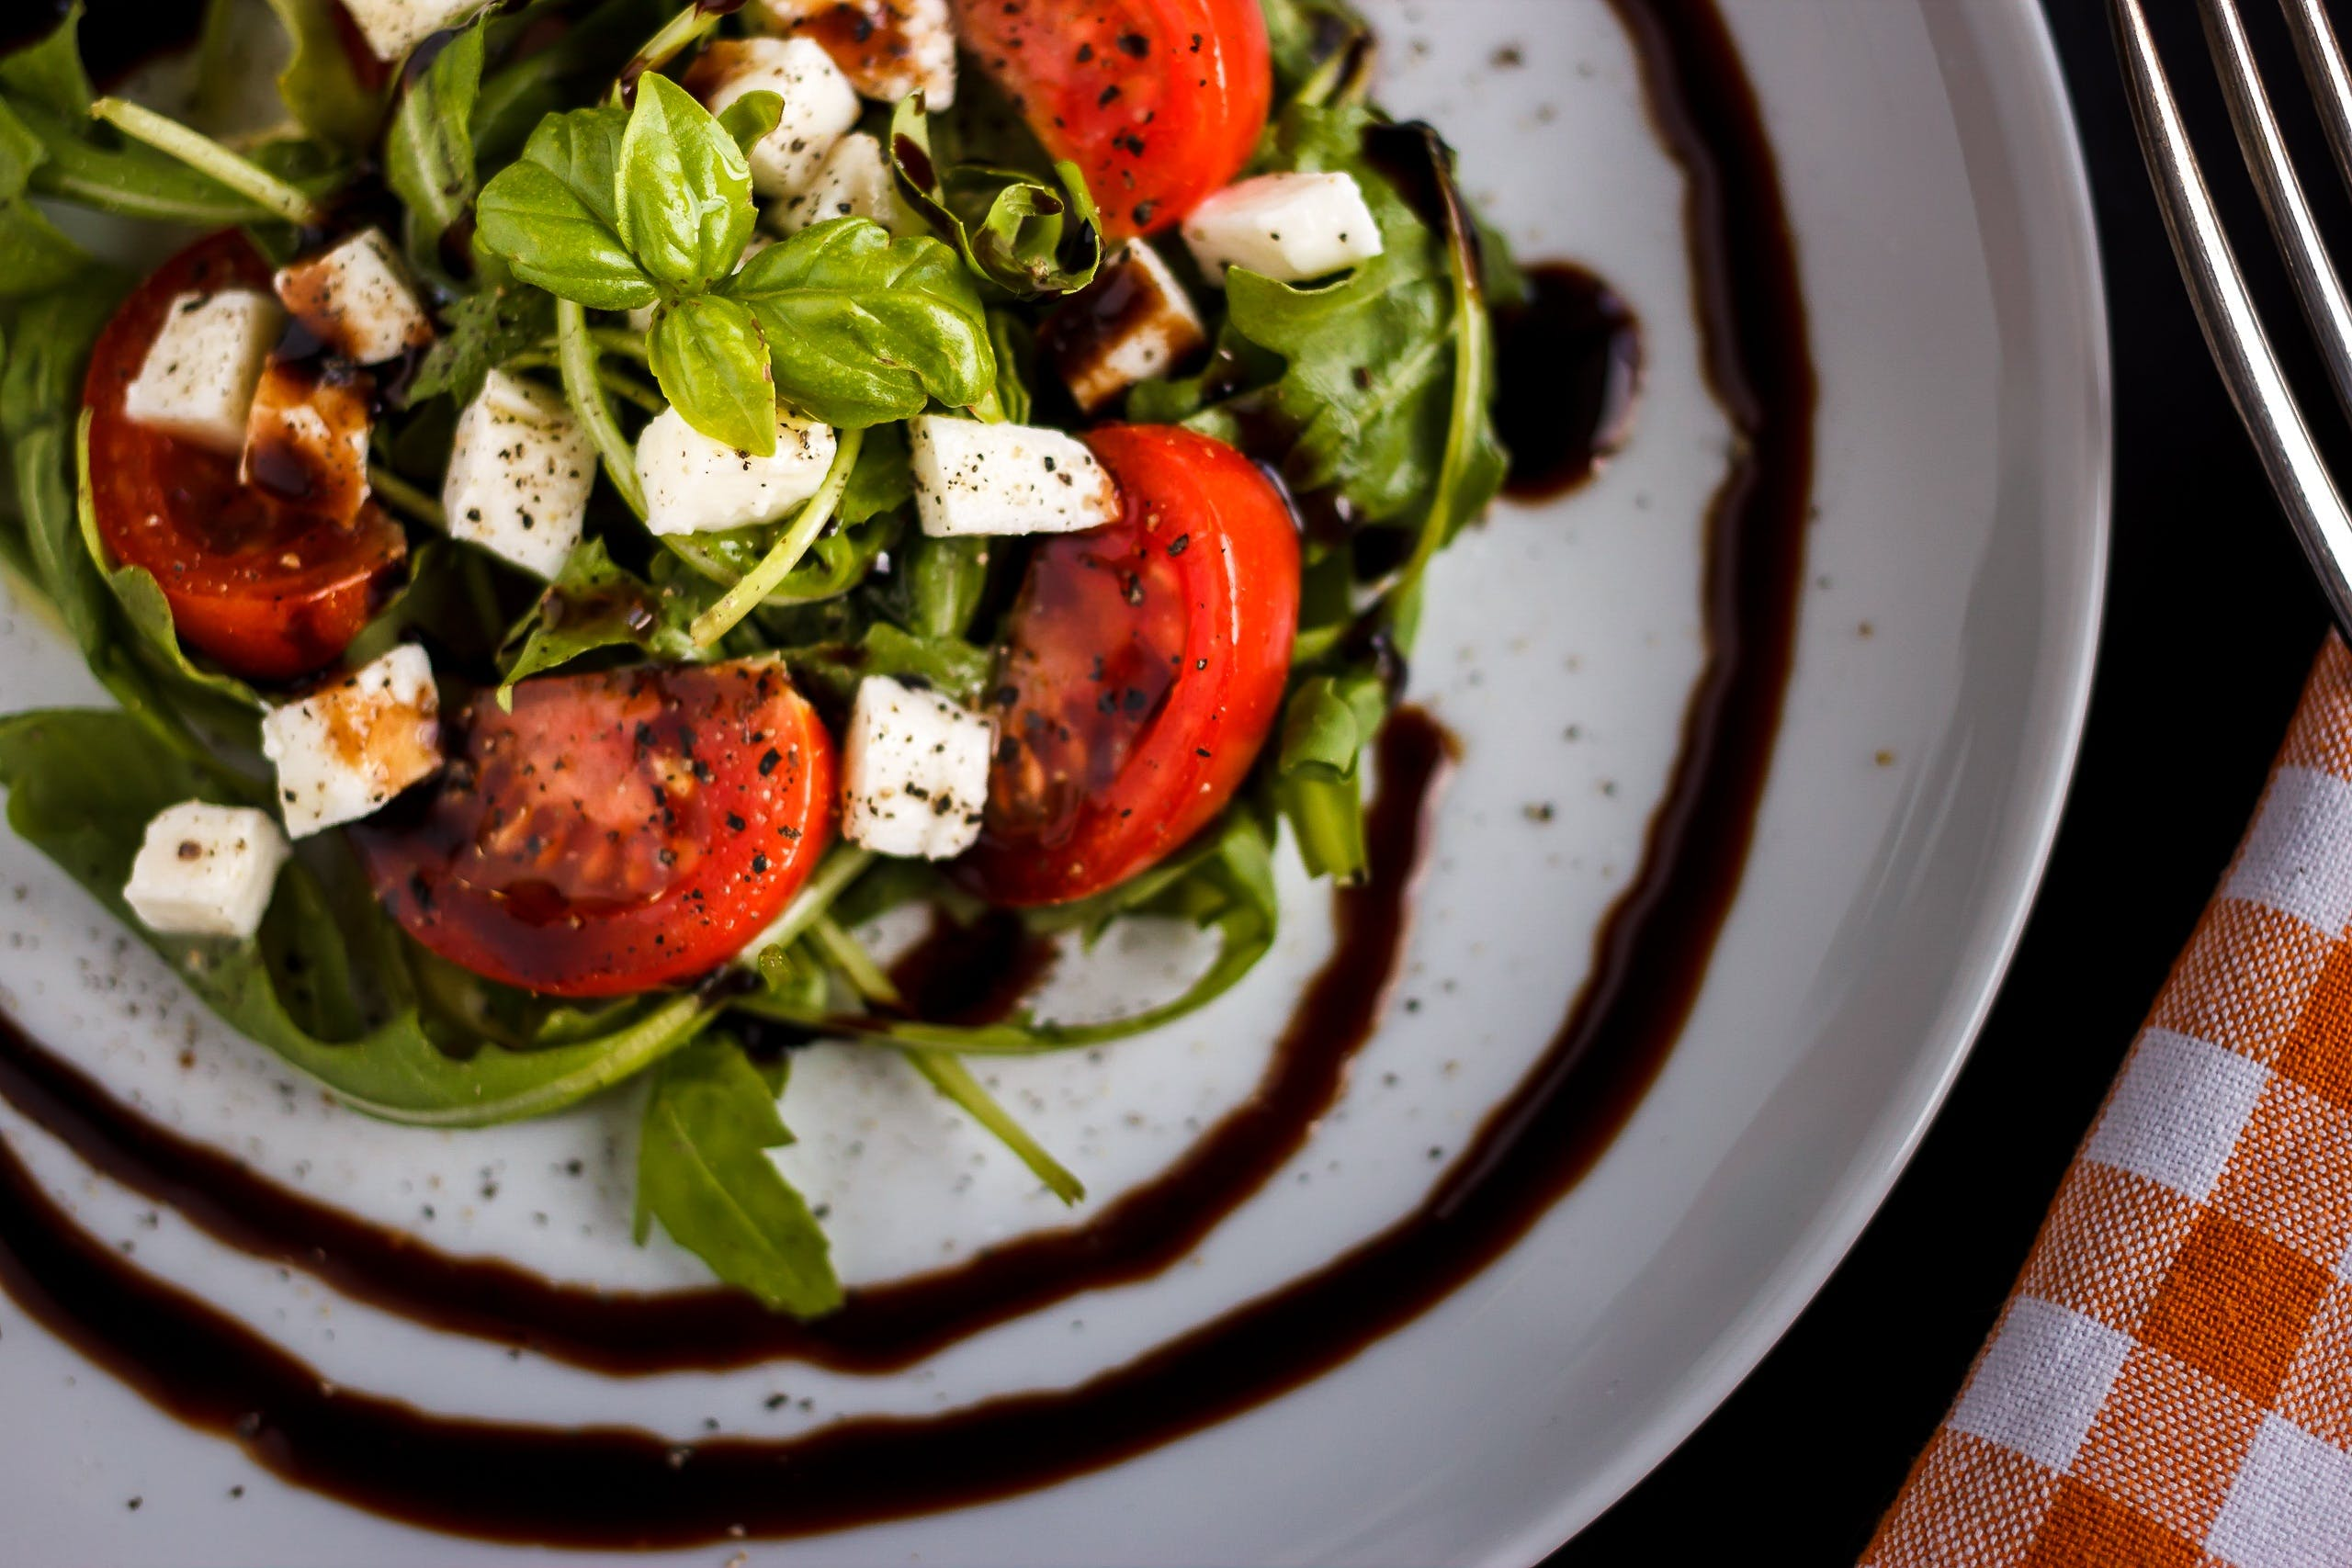 Free stock photo of plate, salad, restaurant, tomatoes